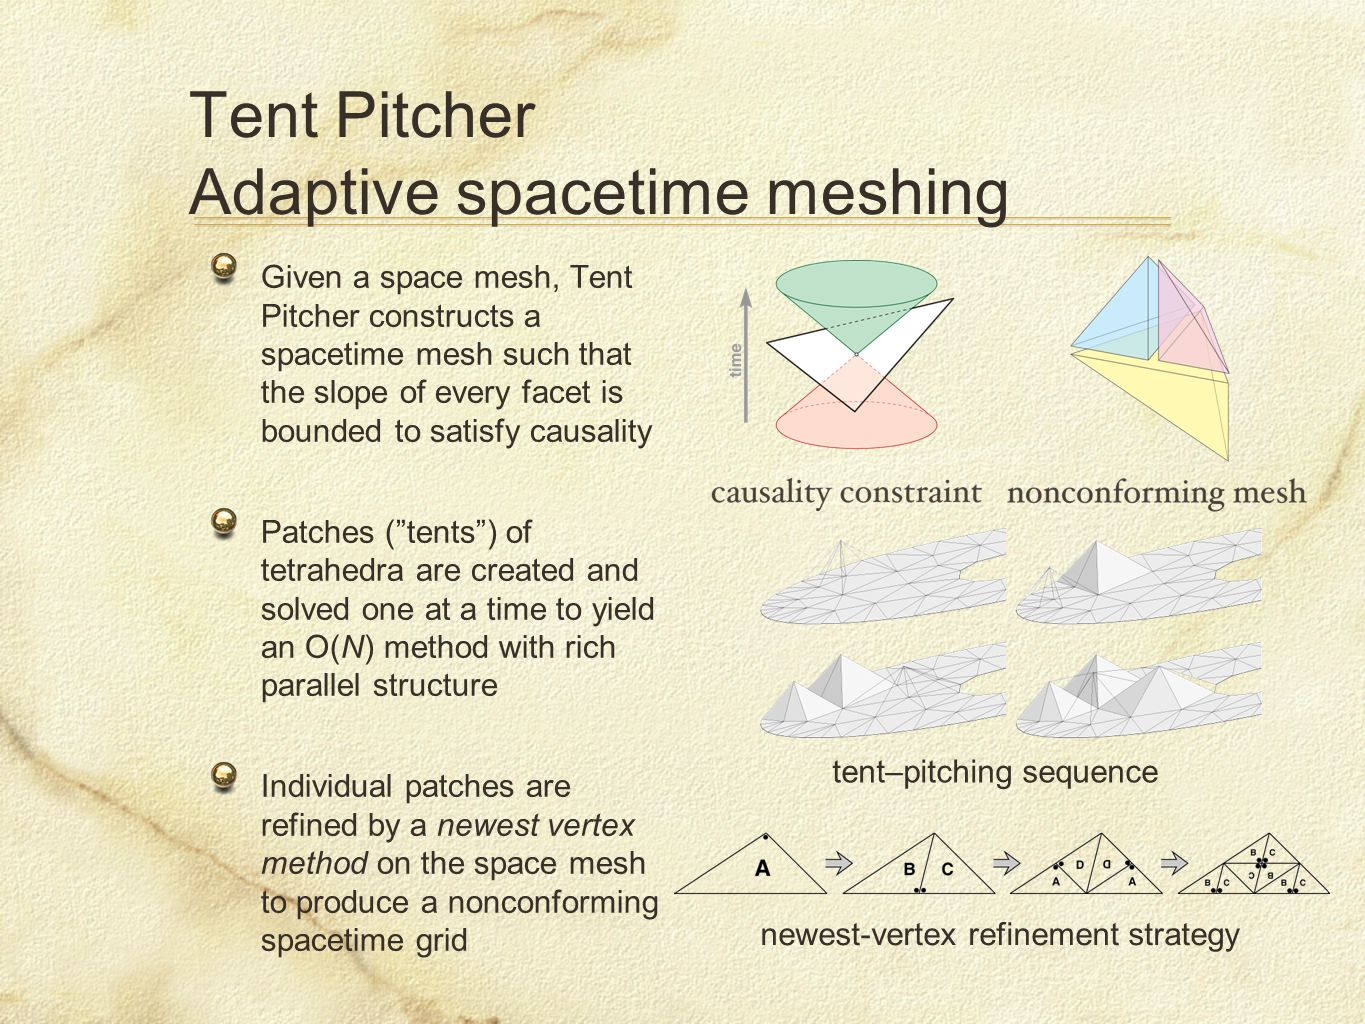 Tent Pitcher Adaptive spacetime meshing Given a space mesh, Tent Pitcher constructs a spacetime mesh such that the slope of every facet is bounded to satisfy causality Patches ( tents ) of tetrahedra are created and solved one at a time to yield an O(N) method with rich parallel structure Individual patches are refined by a newest vertex method on the space mesh to produce a nonconforming spacetime grid tent–pitching sequence newest-vertex refinement strategy